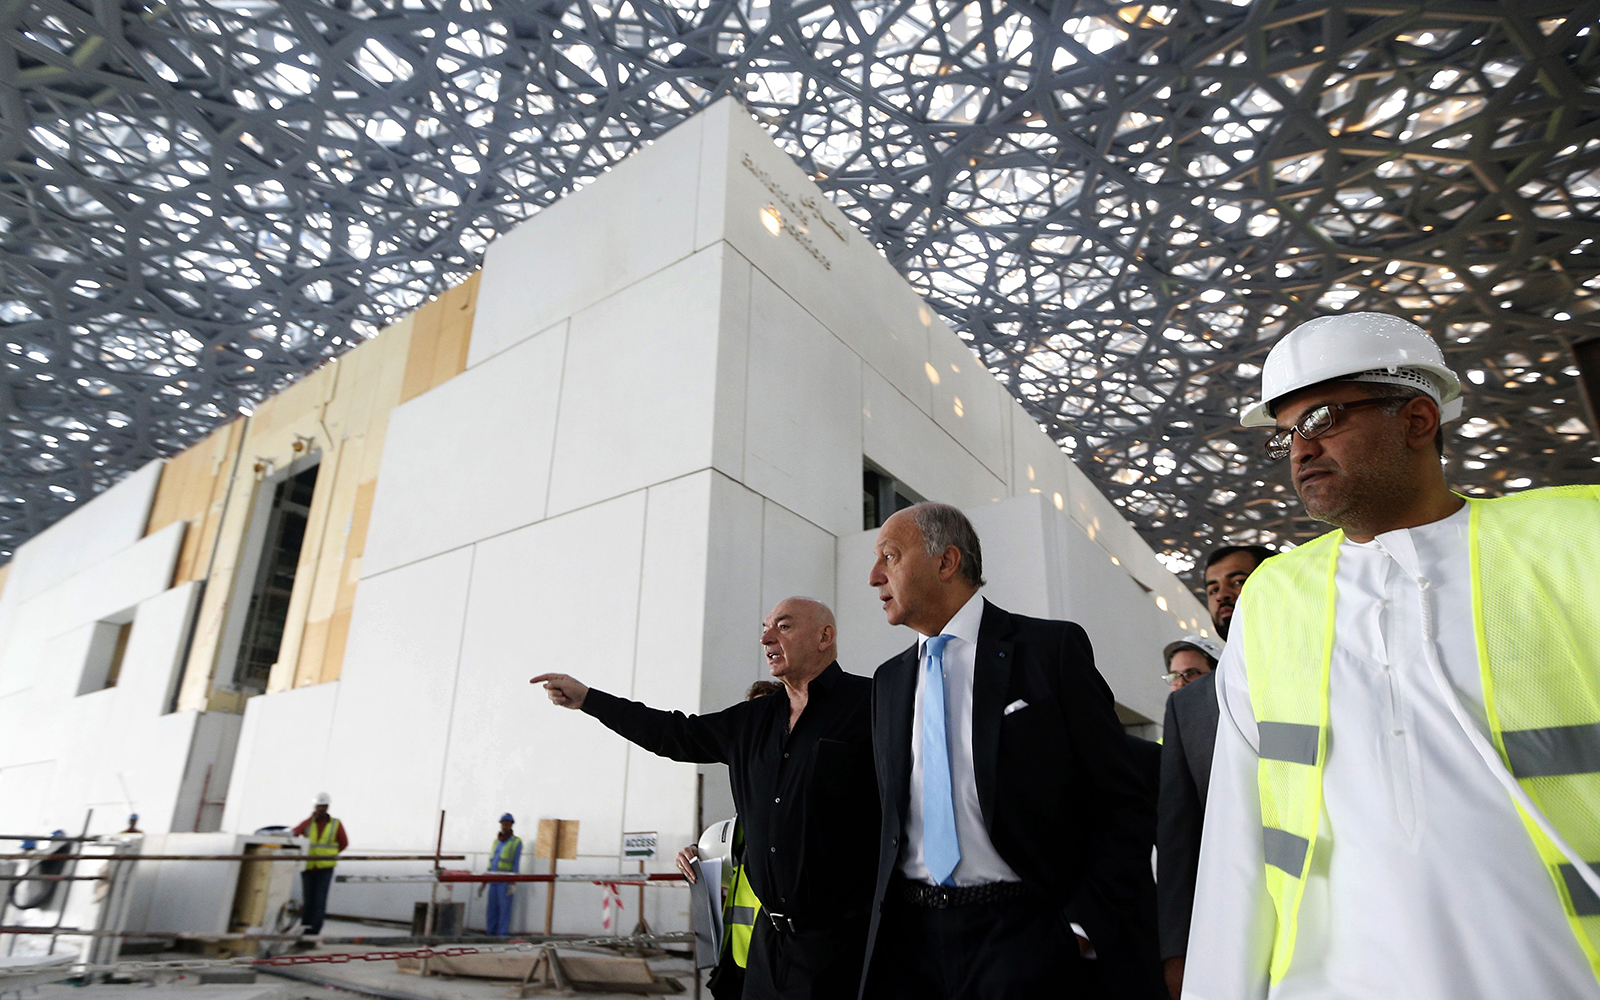 French Foreign Minister Laurent Fabius (C) and French architect Jean Nouvel (L) visit the construction site of the future Louvre museum on Saadiyat island, outside the UAE capital Abu Dhabi on January 18, 2016.Fabius visits UAE to attend the 9th edition